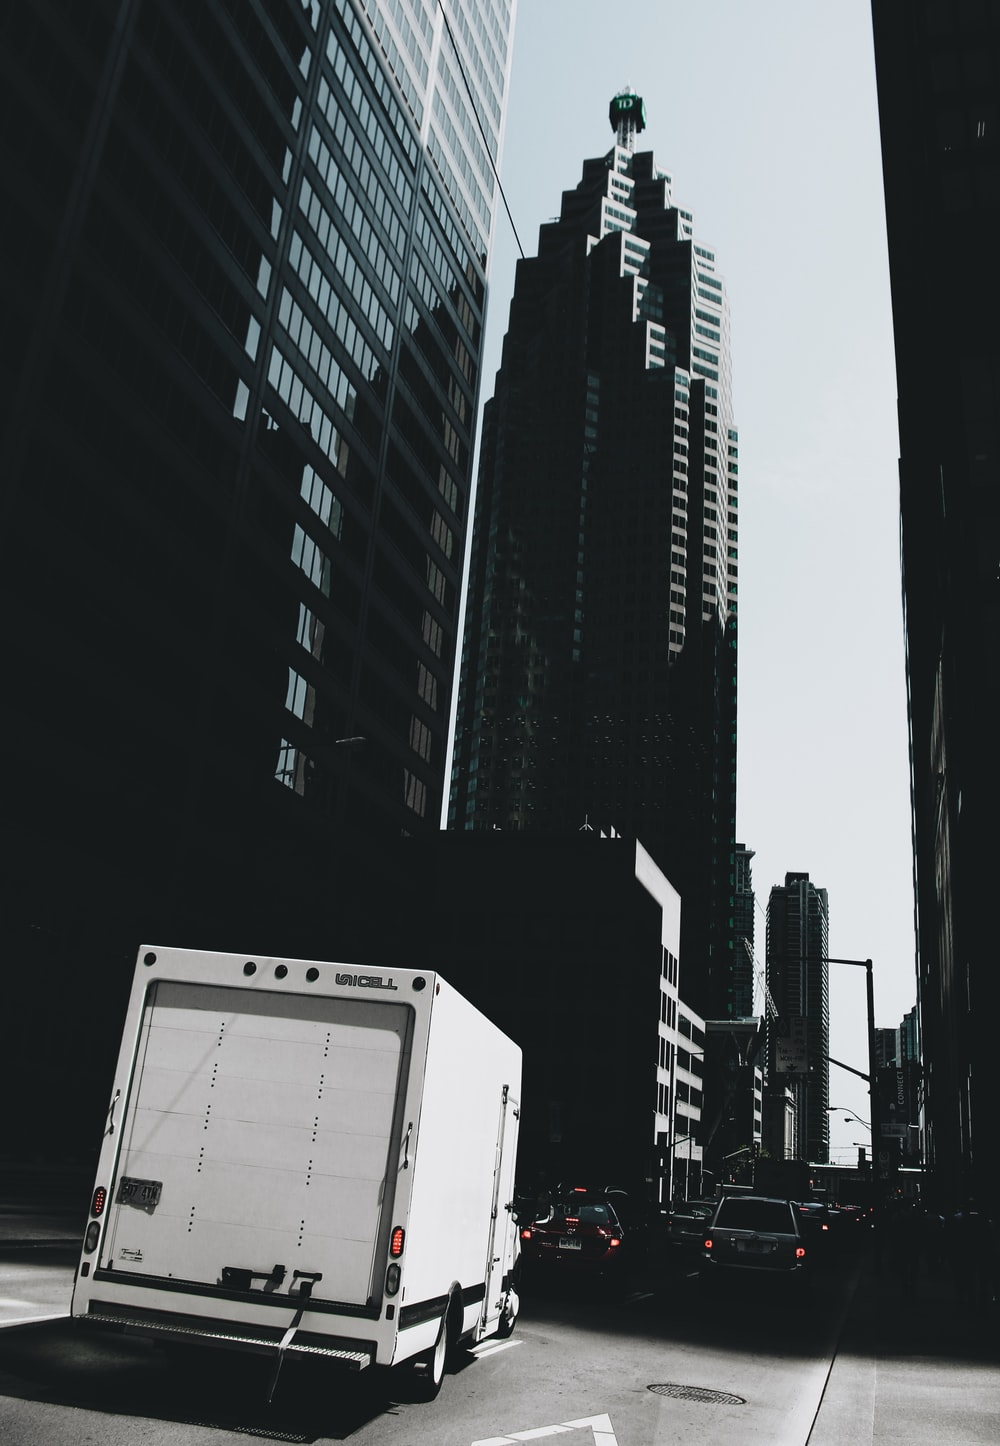 white and black high rise buildings during daytime